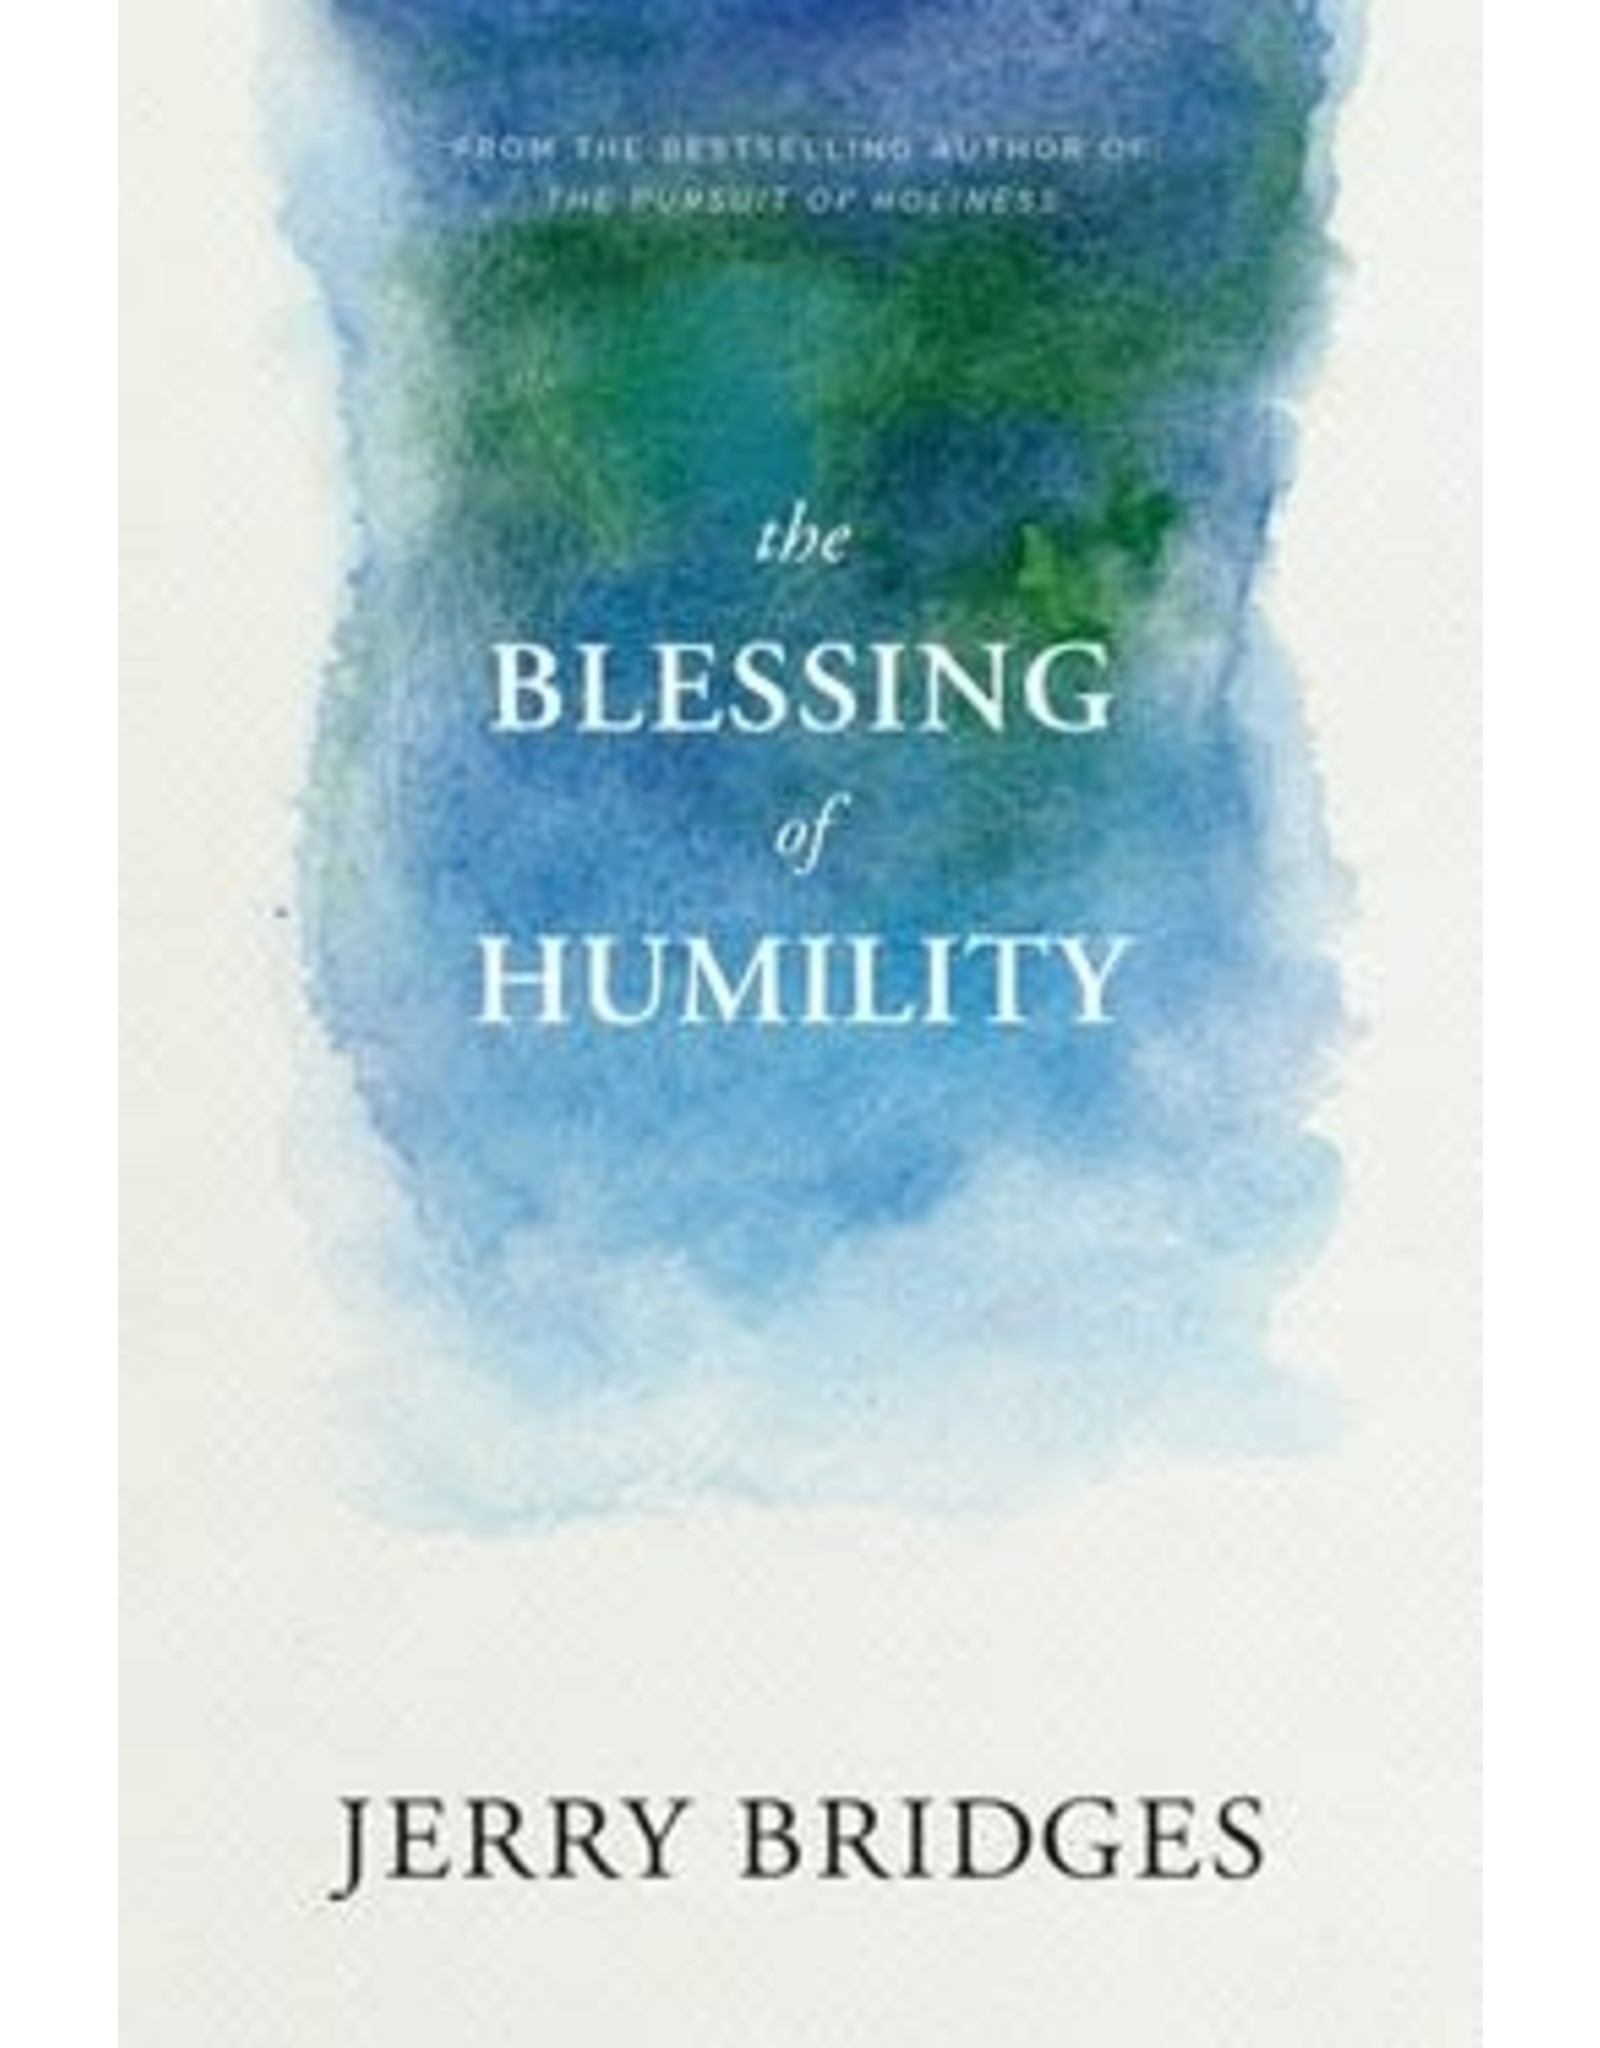 Bridges The Blessing of Humility